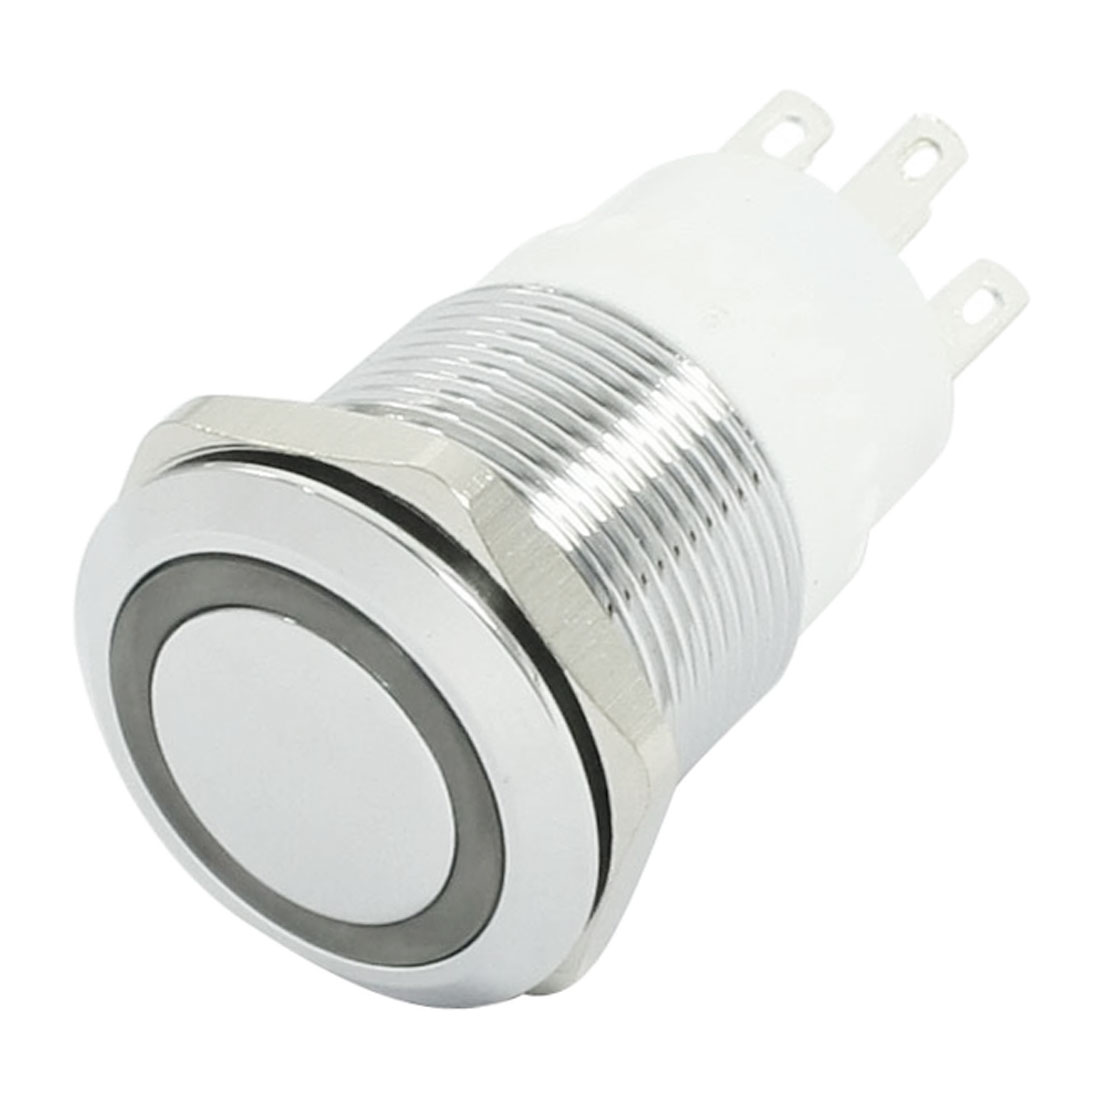 19mm Thread SPDT Latching Red LED Stainless Steel Push Button Switch 24V 3A